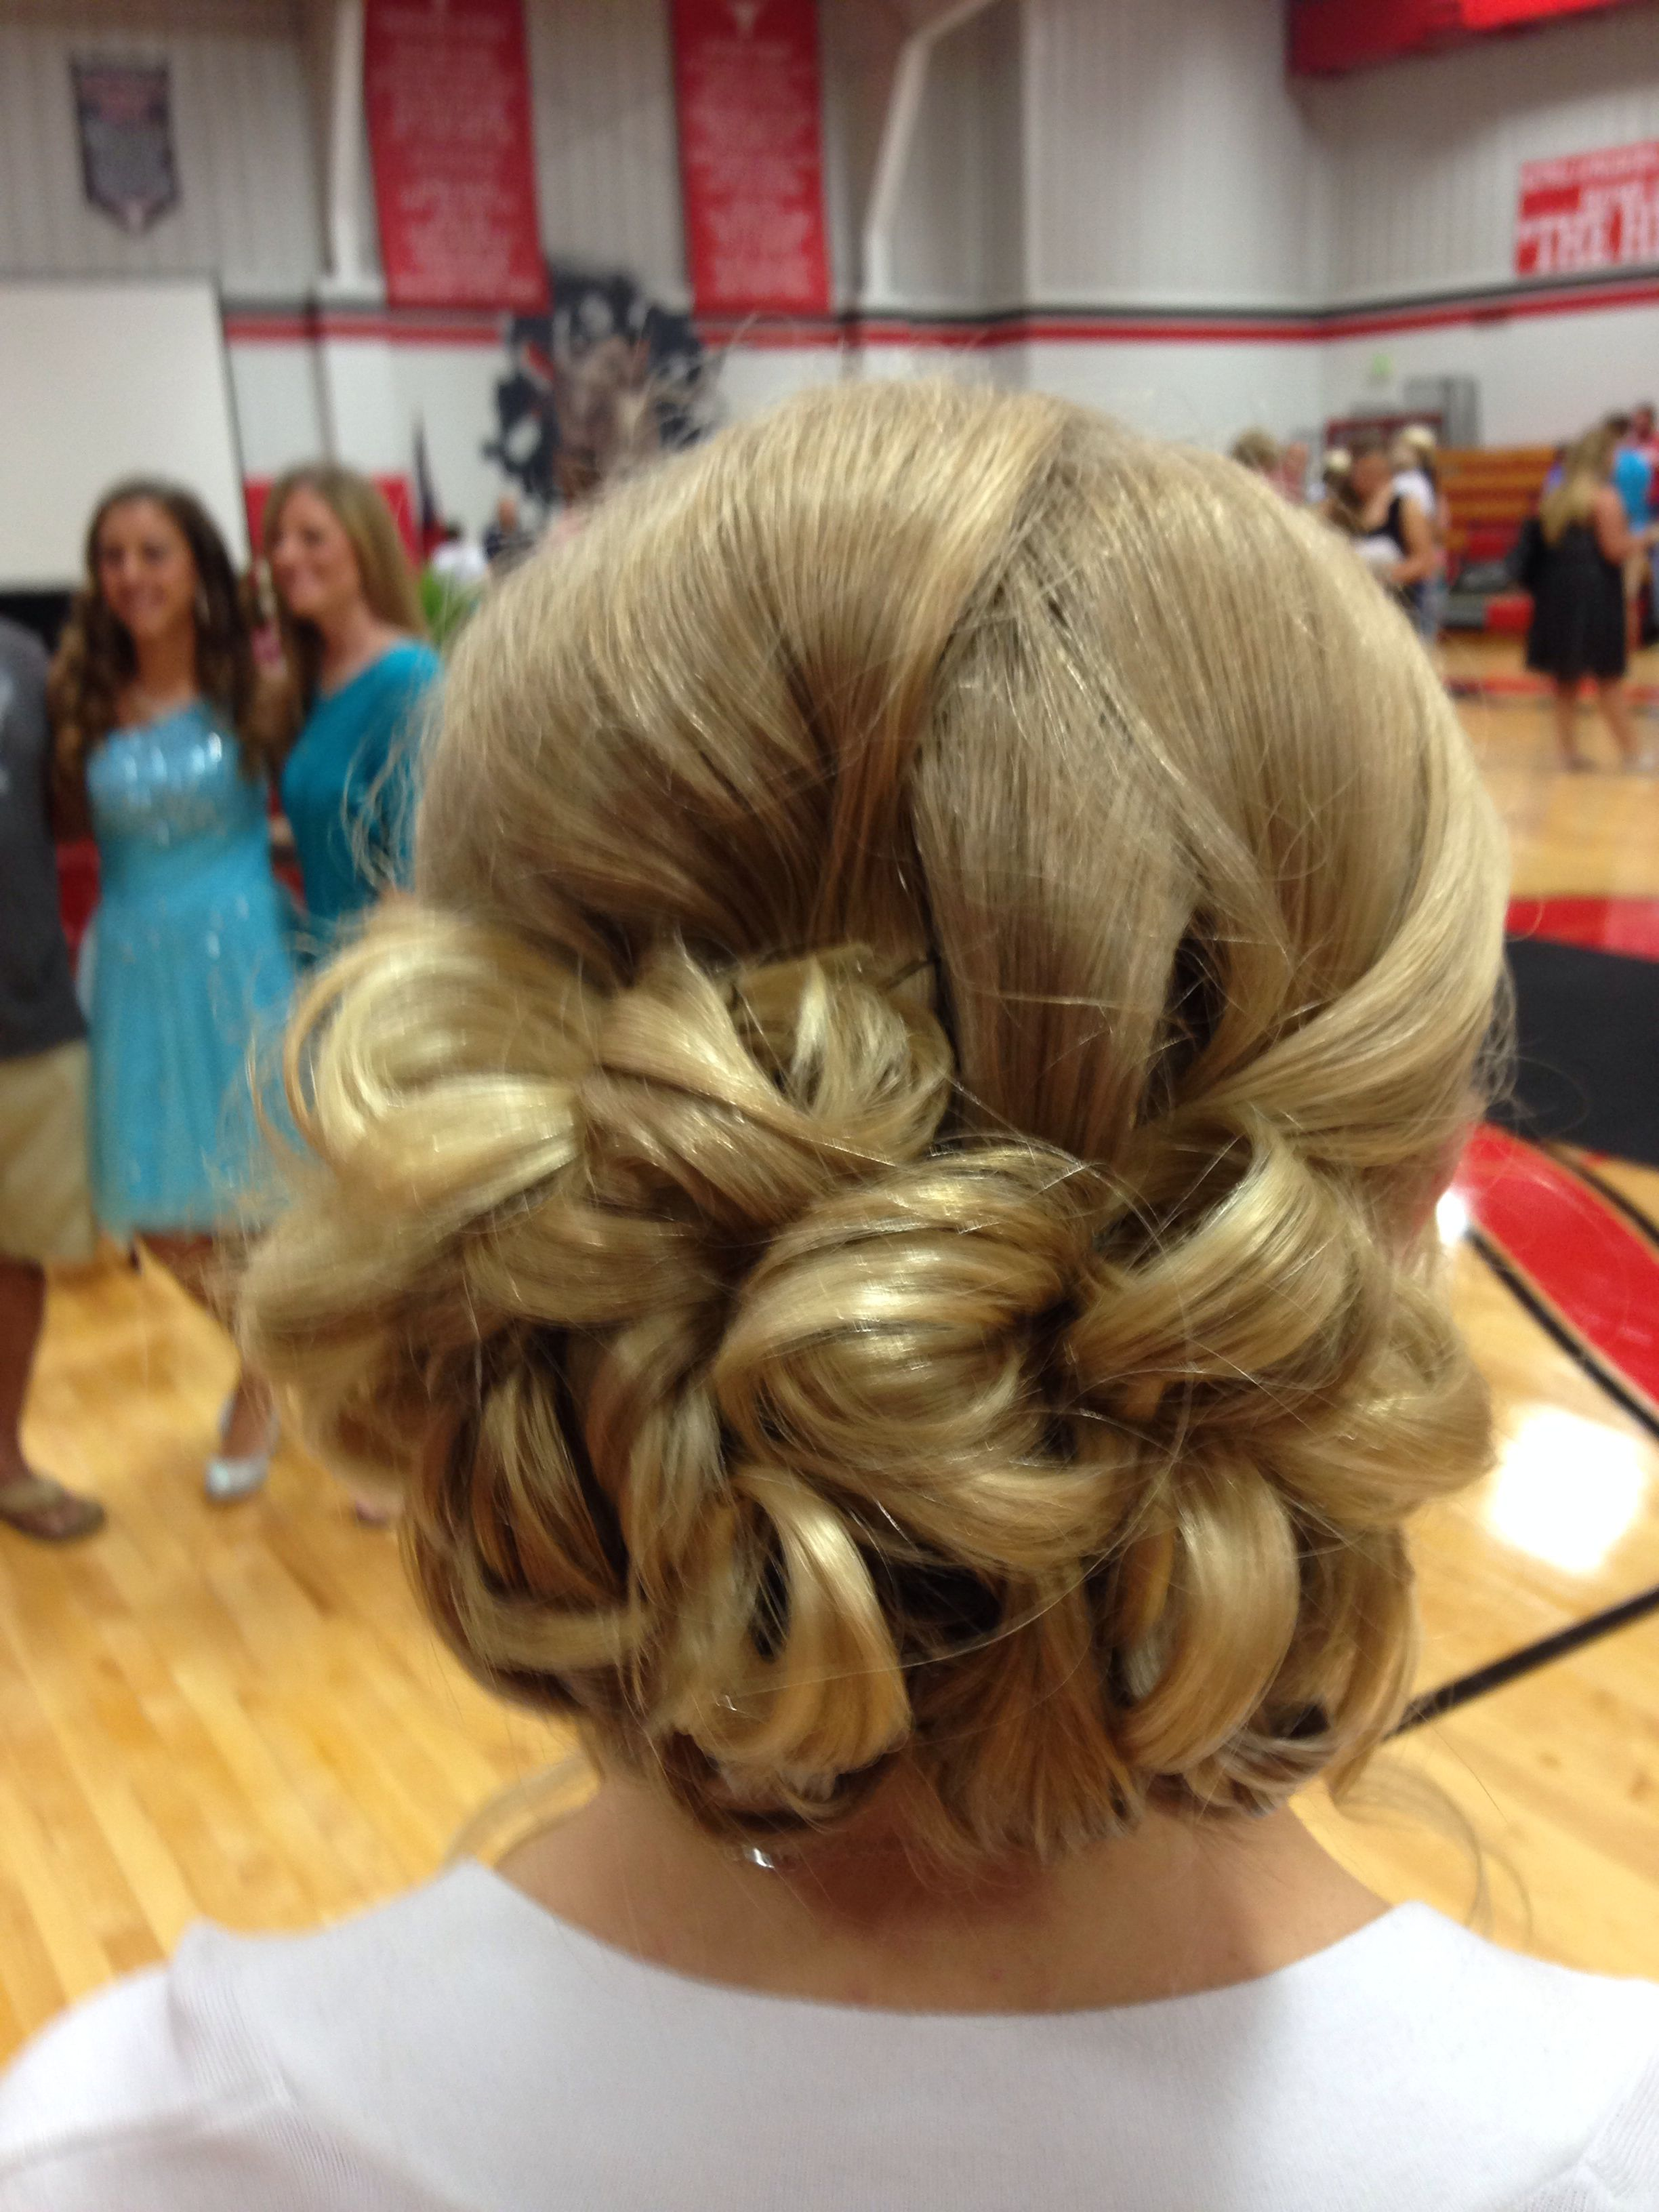 Updo for my 8th grade graduation done by Cherie Hudson the cutting